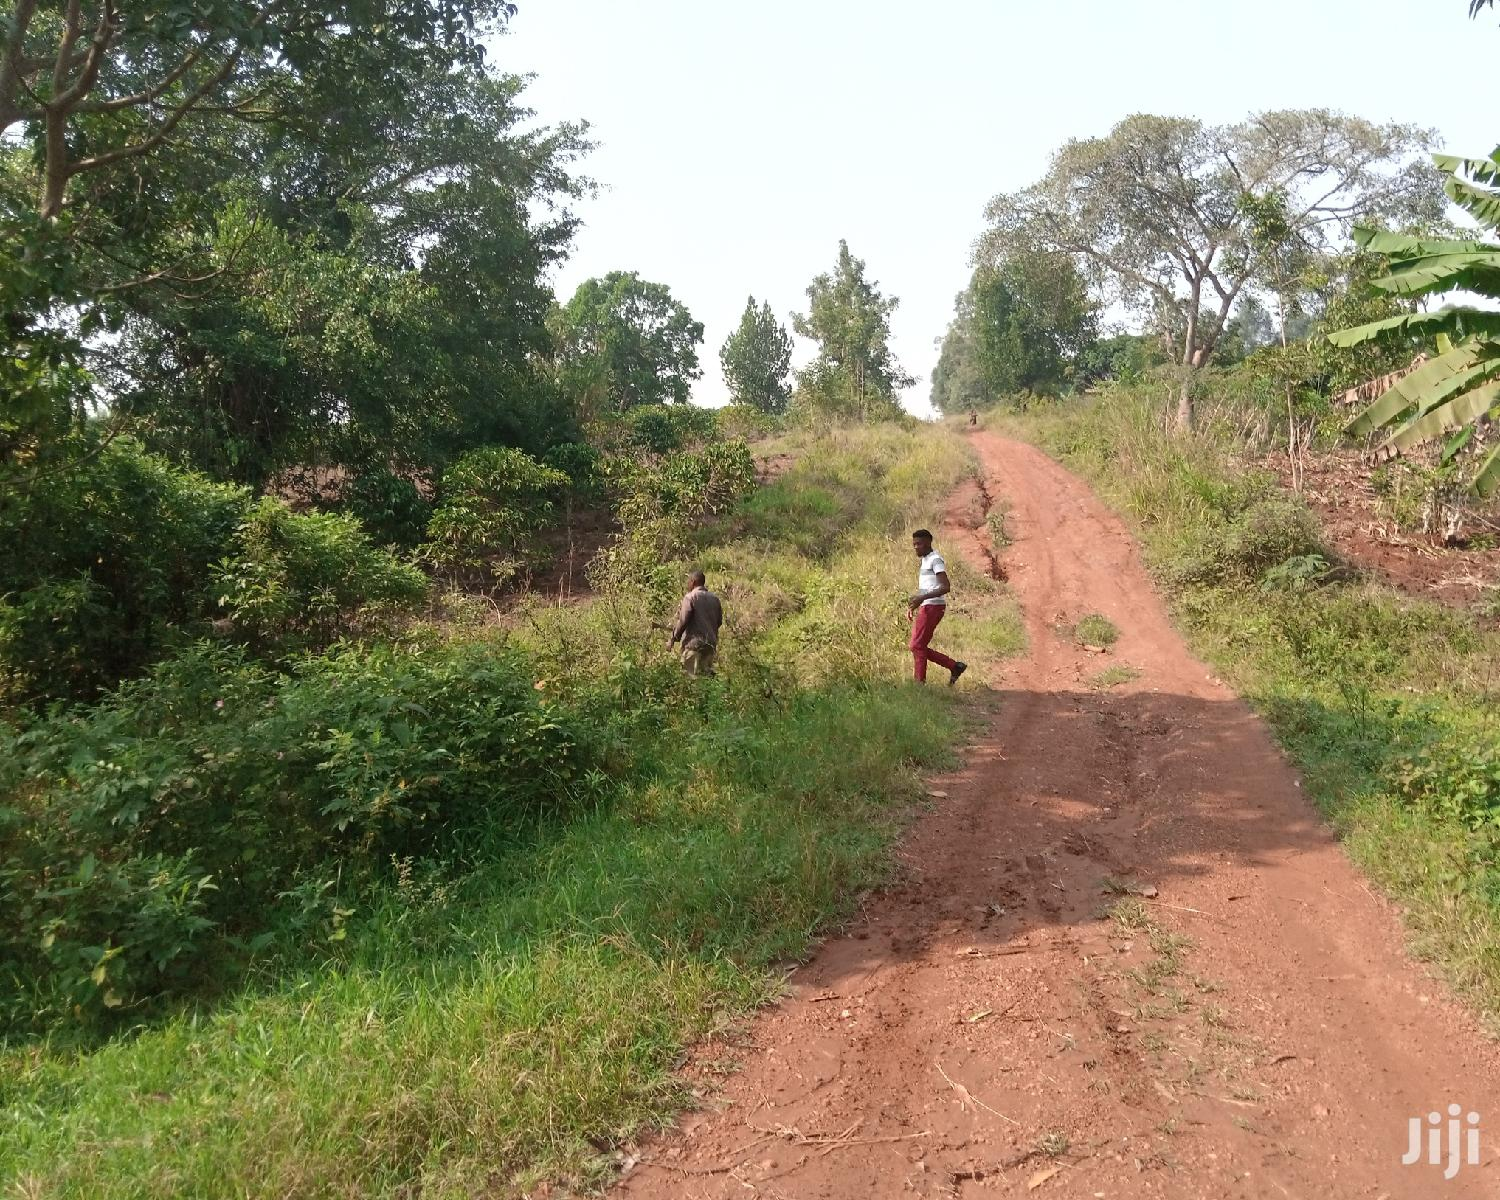 1 Acre Land For Sale In Kyenjovu Kinoni (1 - 100 Acres)